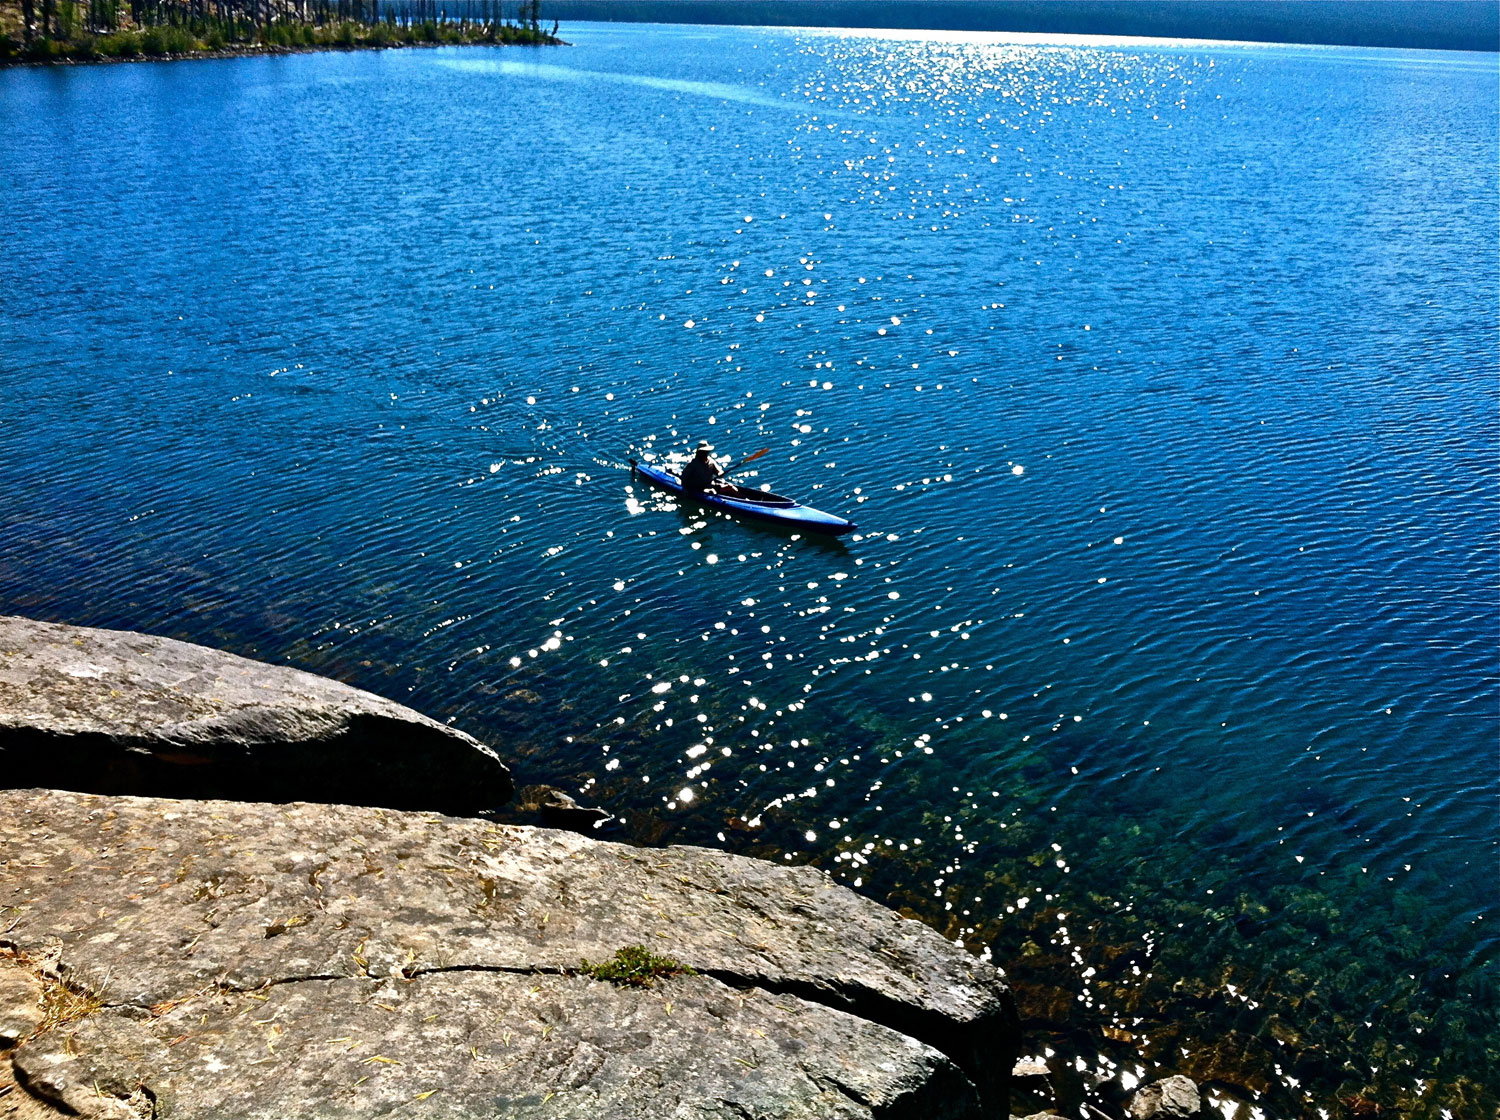 Kayaking on Waldo Lake